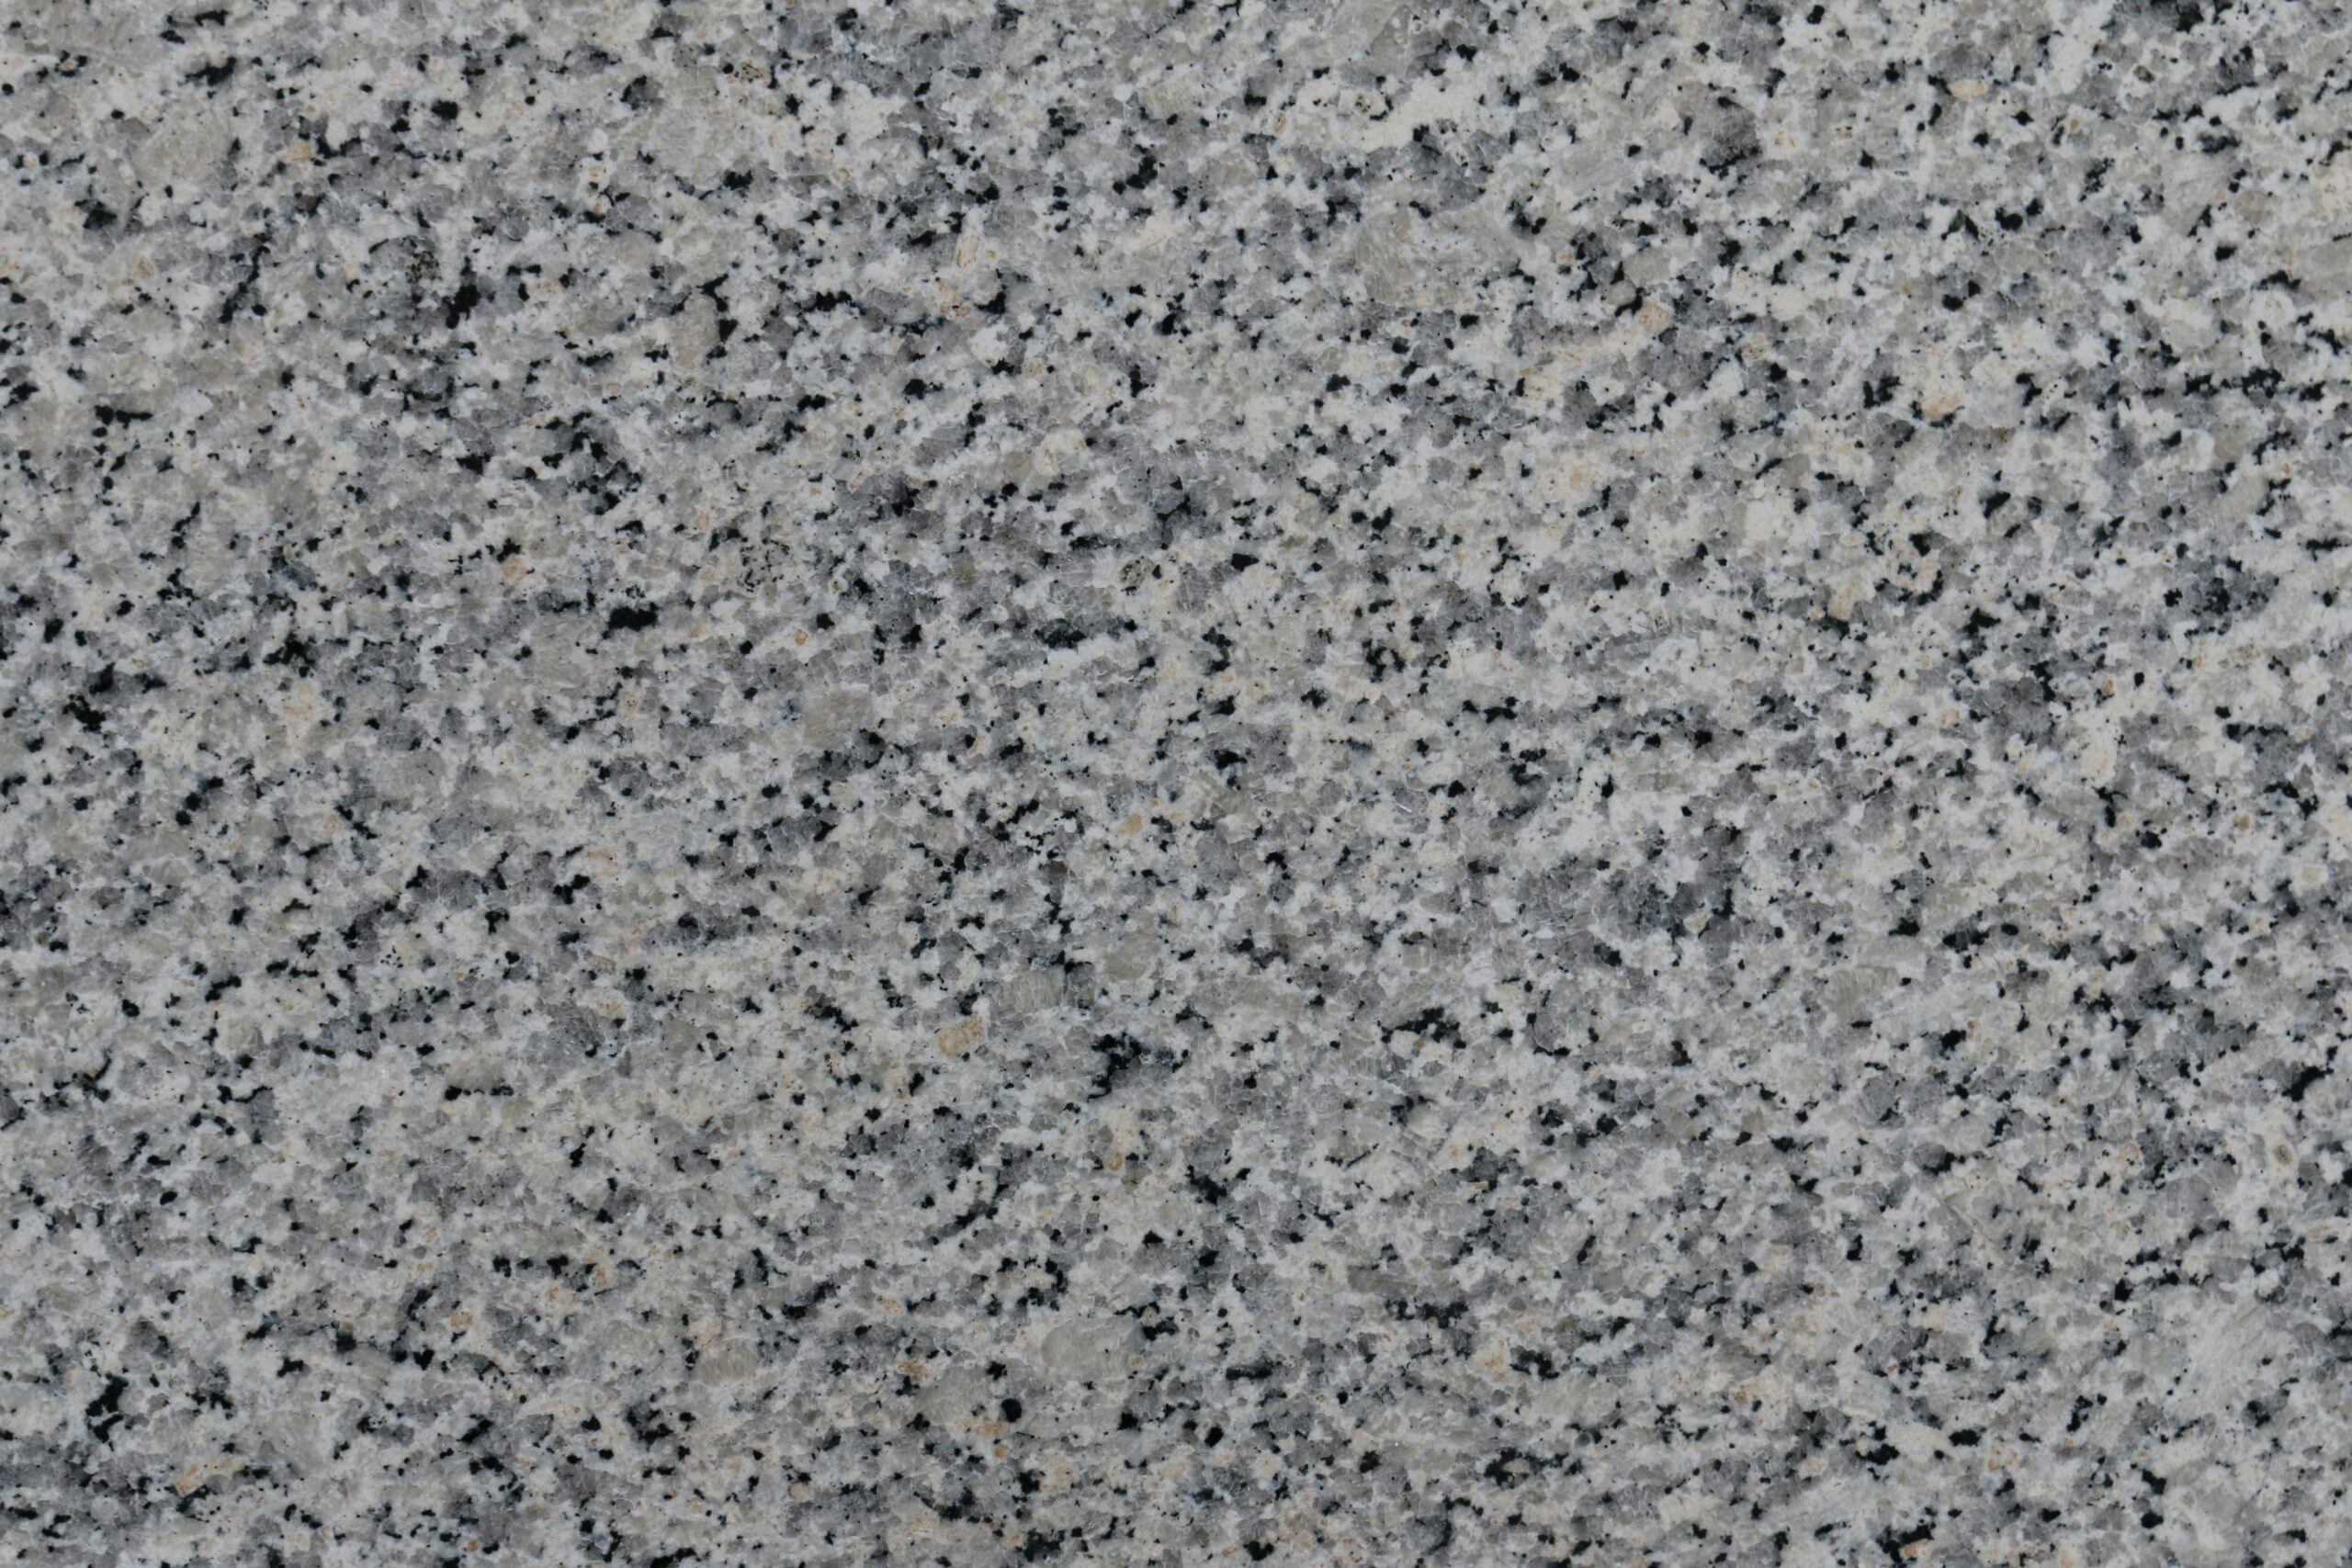 Grey Granite Stone Slab With Black Speckles